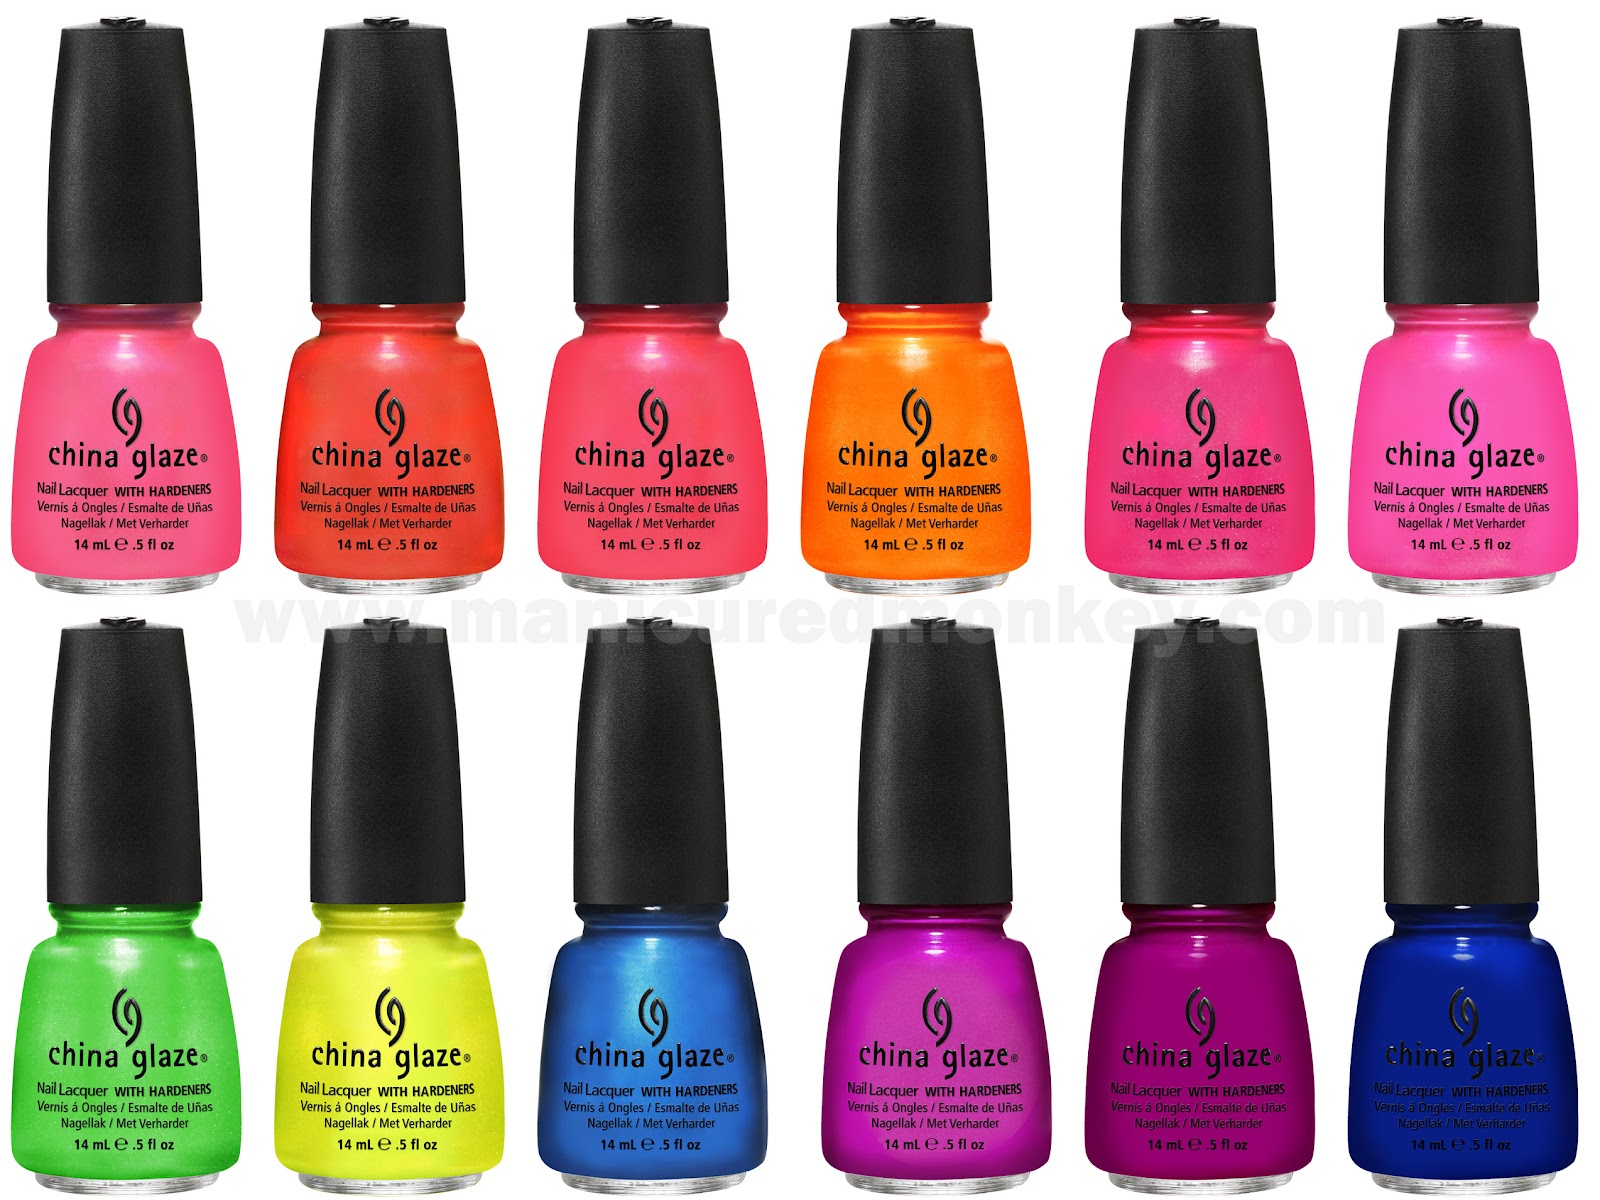 Top 10 name brand nail polish sparkly polish nails nvjuhfo Image collections